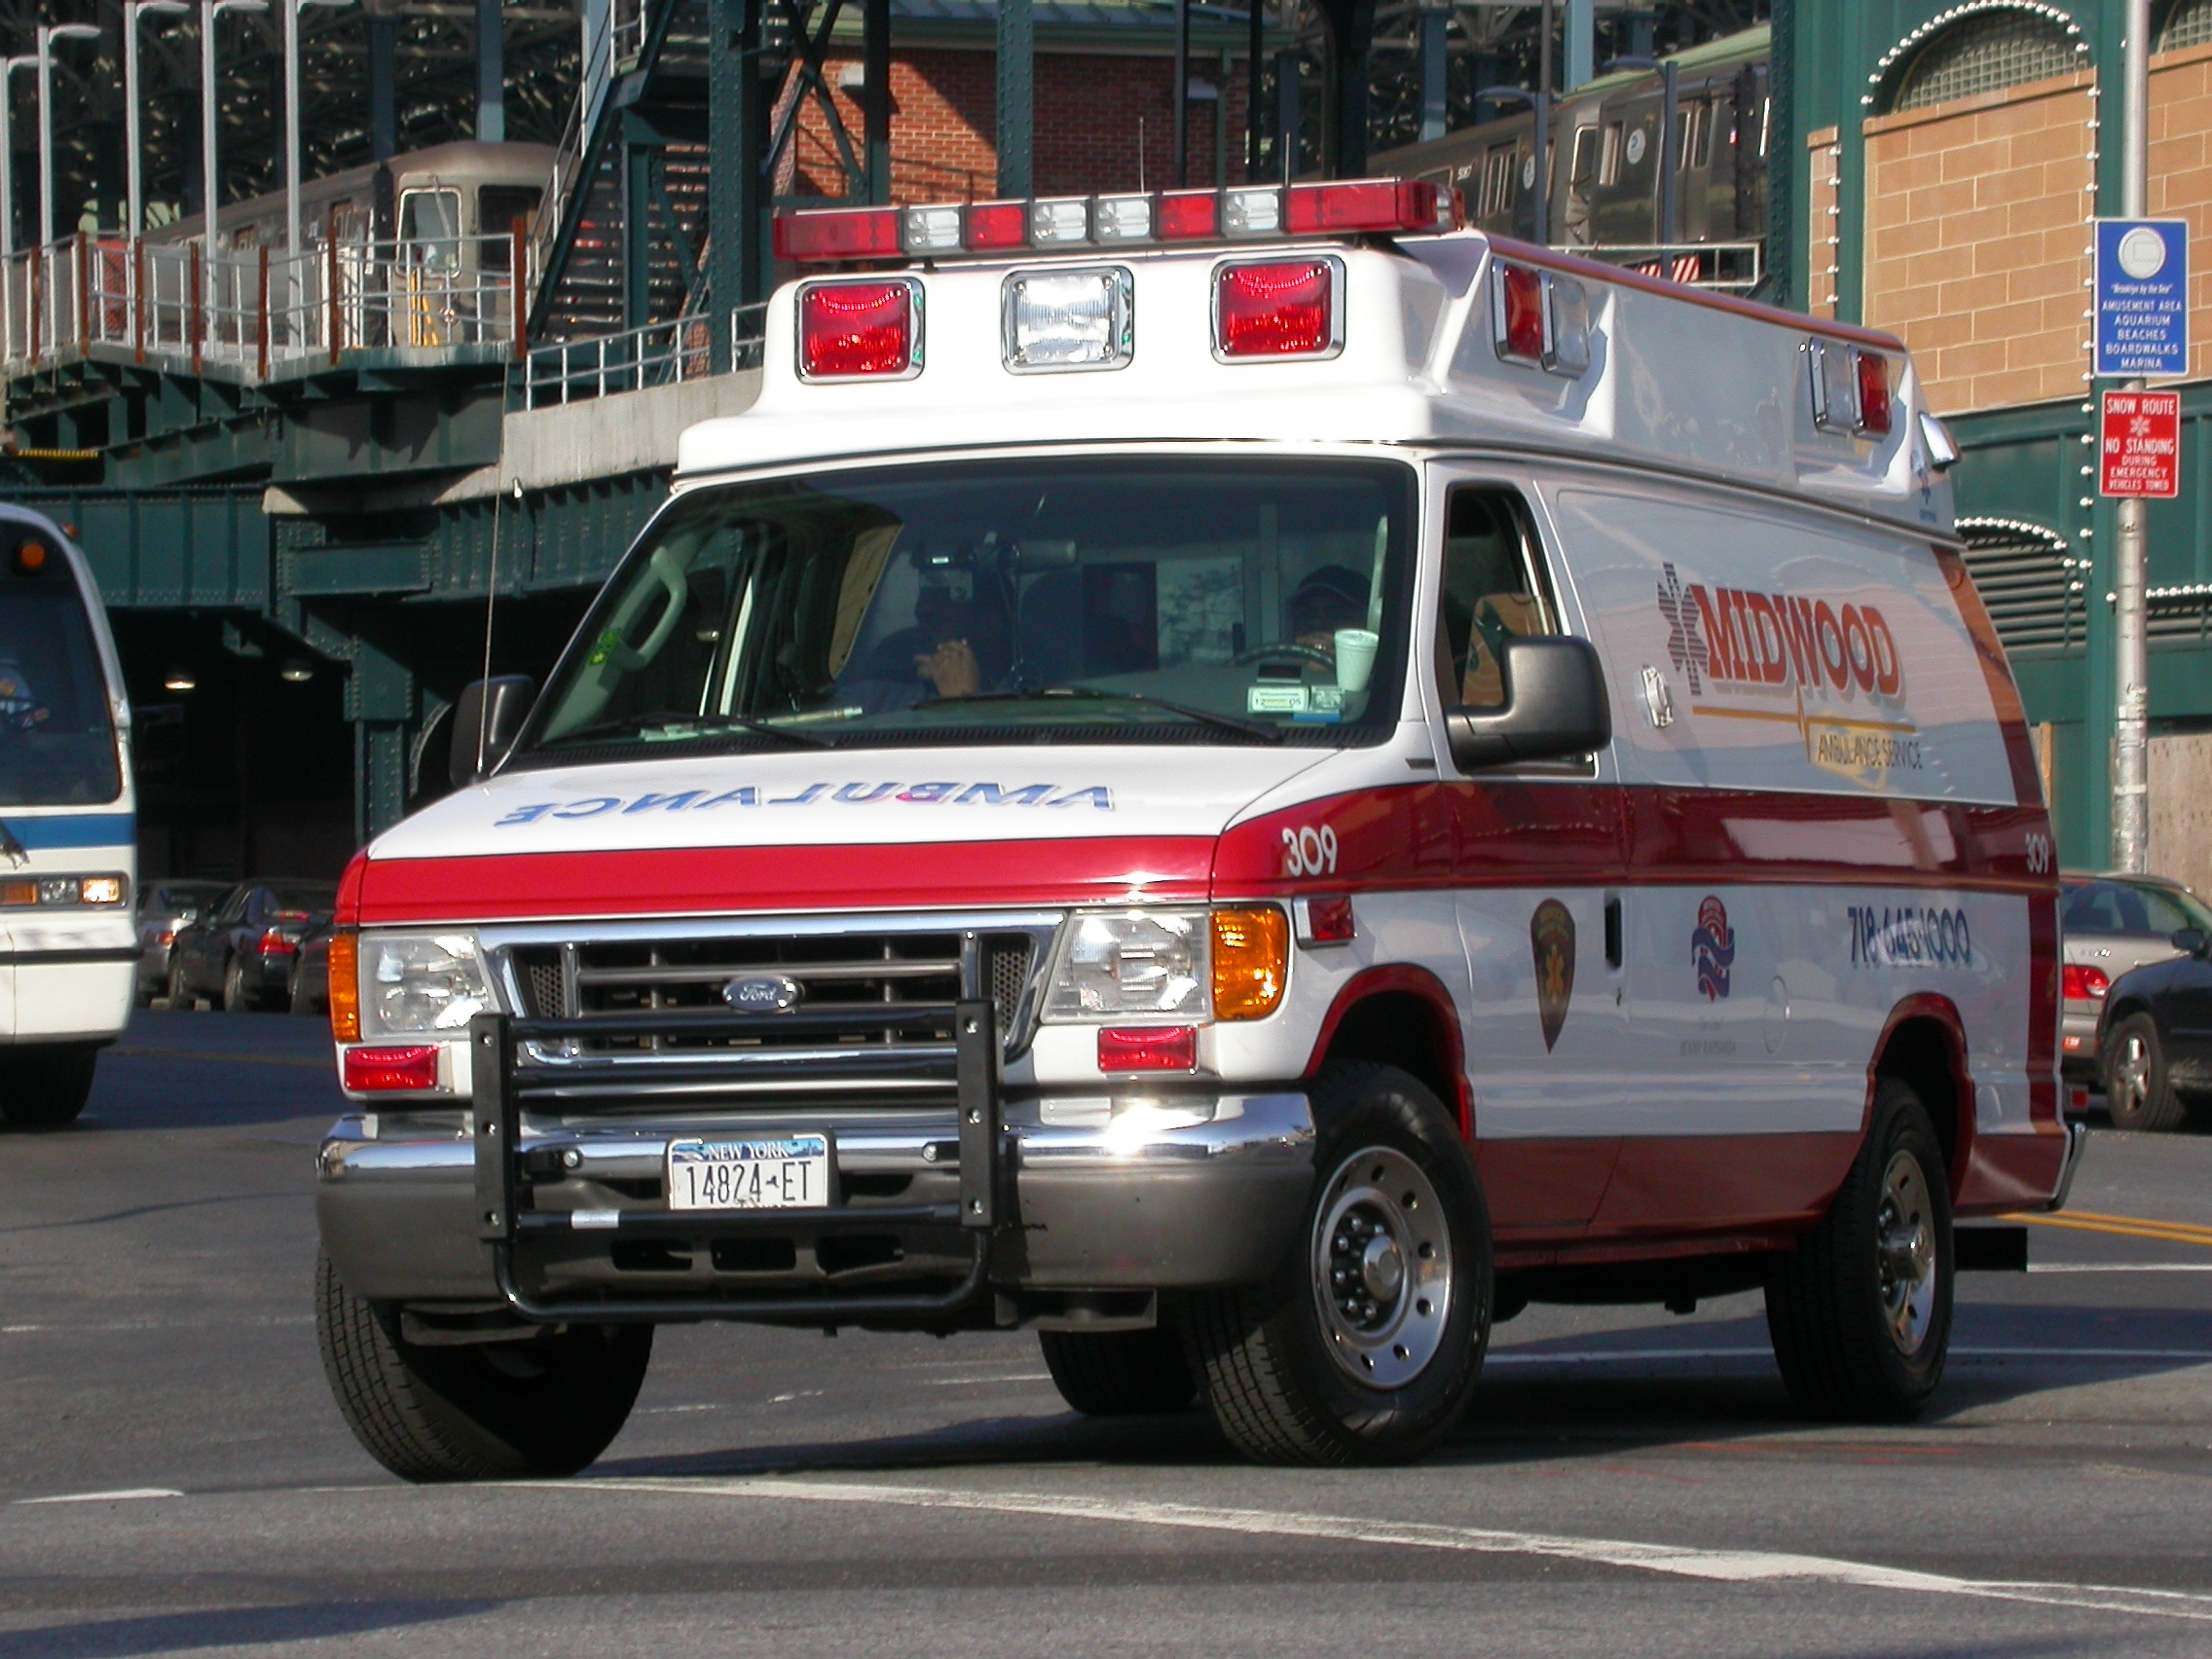 Ford Econoline 350 >> File:2005 Ford E-350 Midwood Ambulance.jpg - Wikipedia